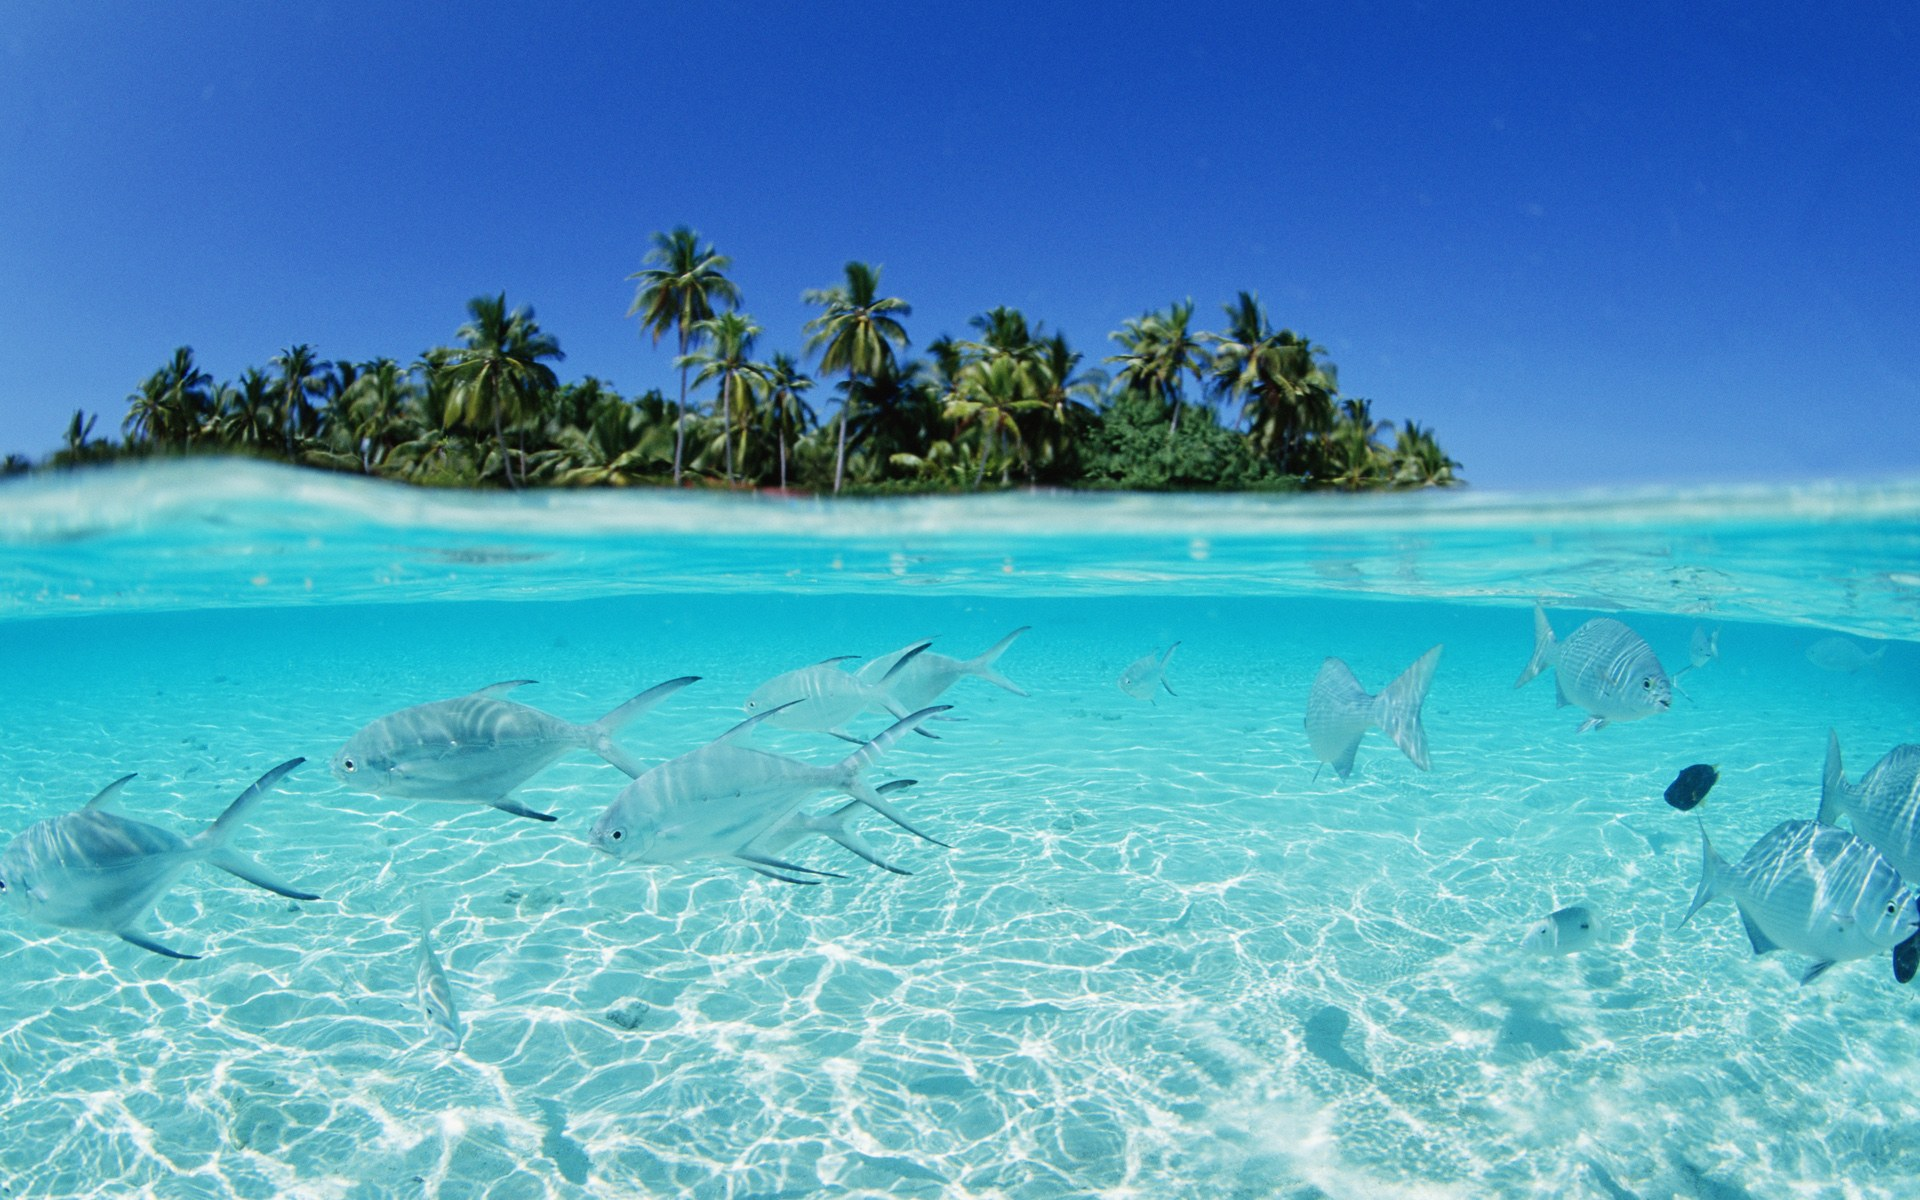 The Reef in the Maldives